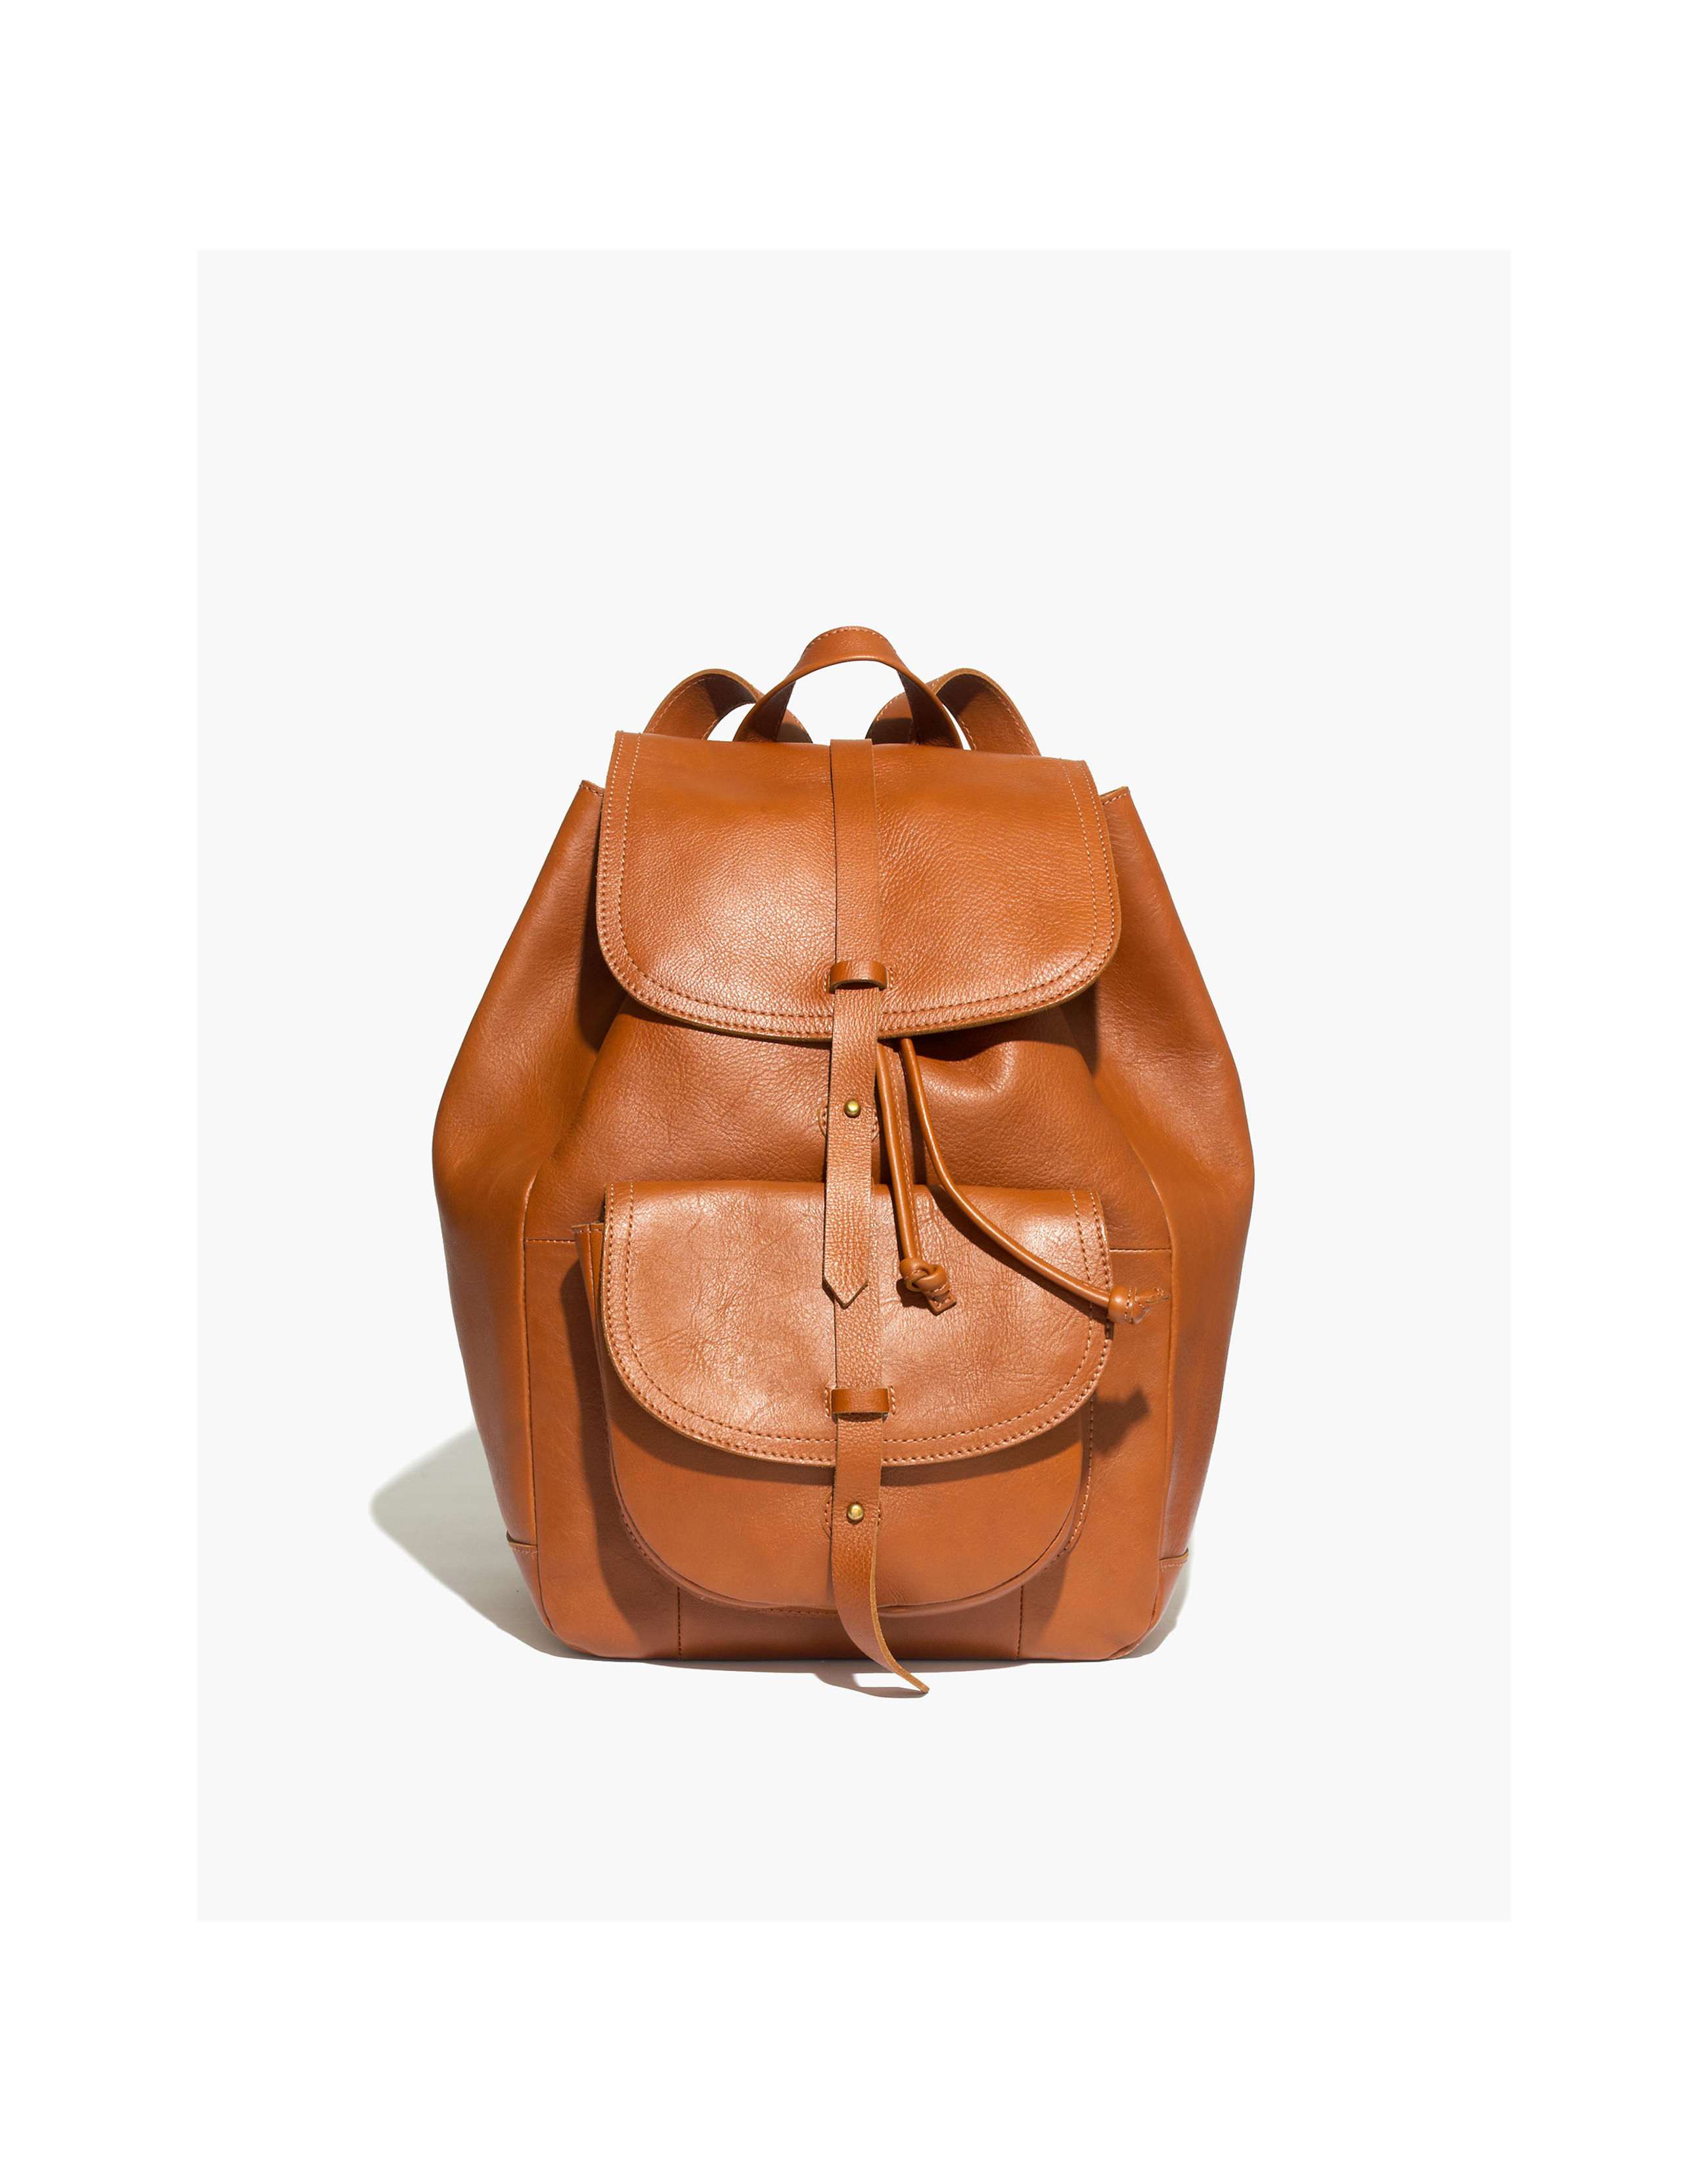 Madewell leather rucksack, gifts for wife